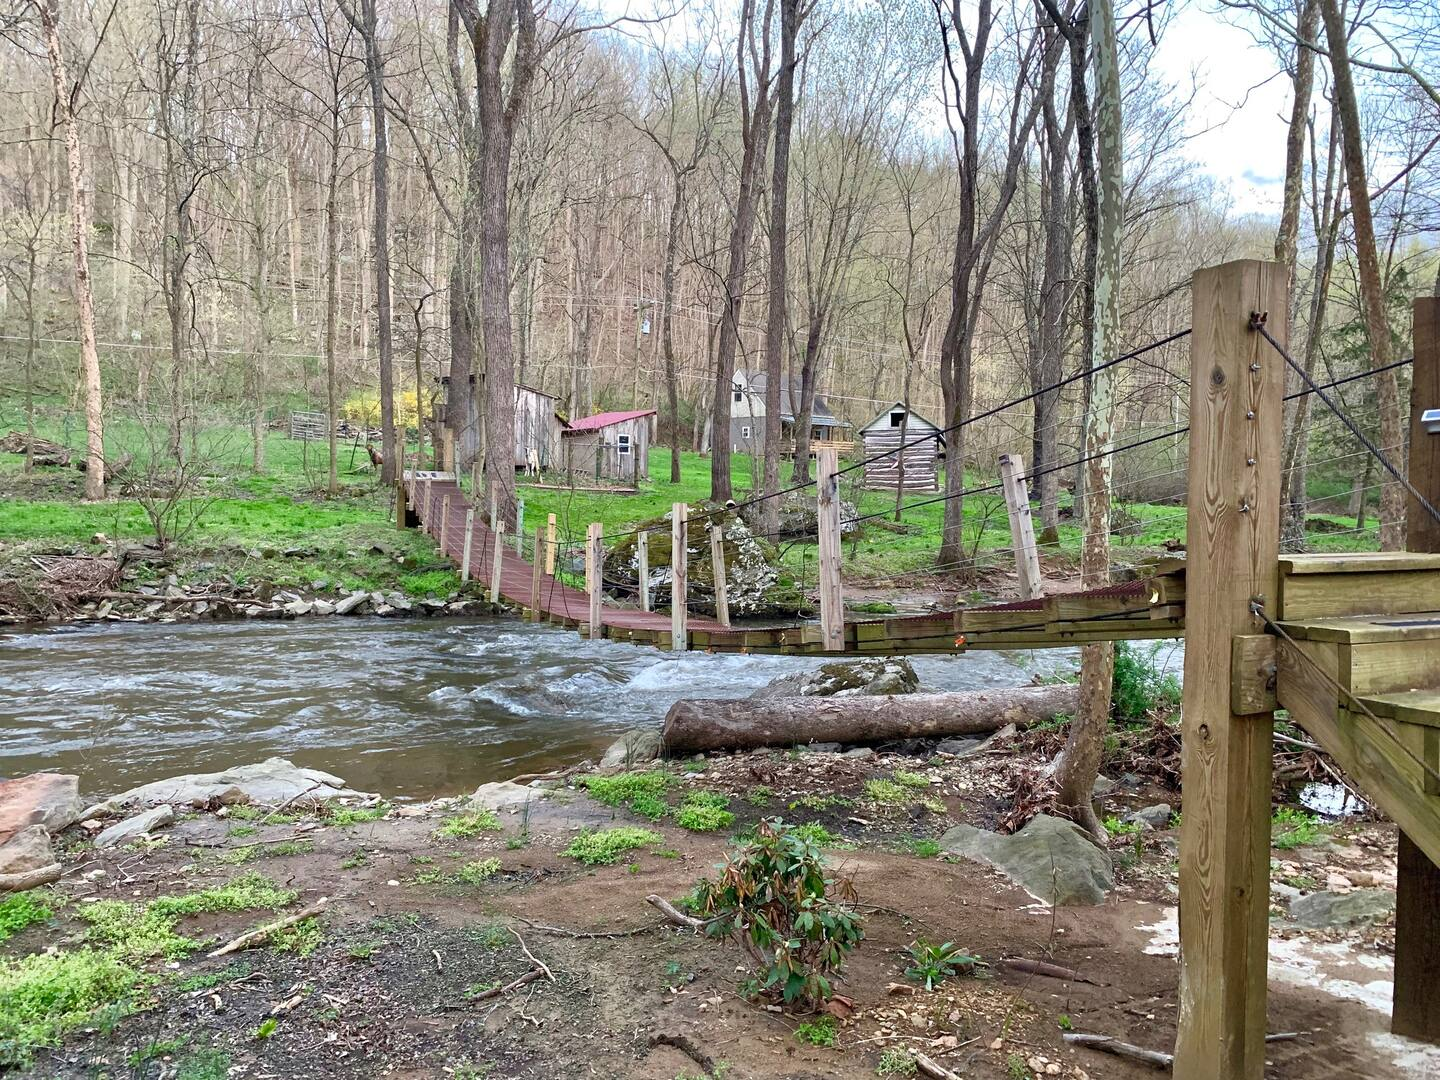 Walk Across A Suspension Bridge To Reach This Whimsical Maryland Cabin On The Creek